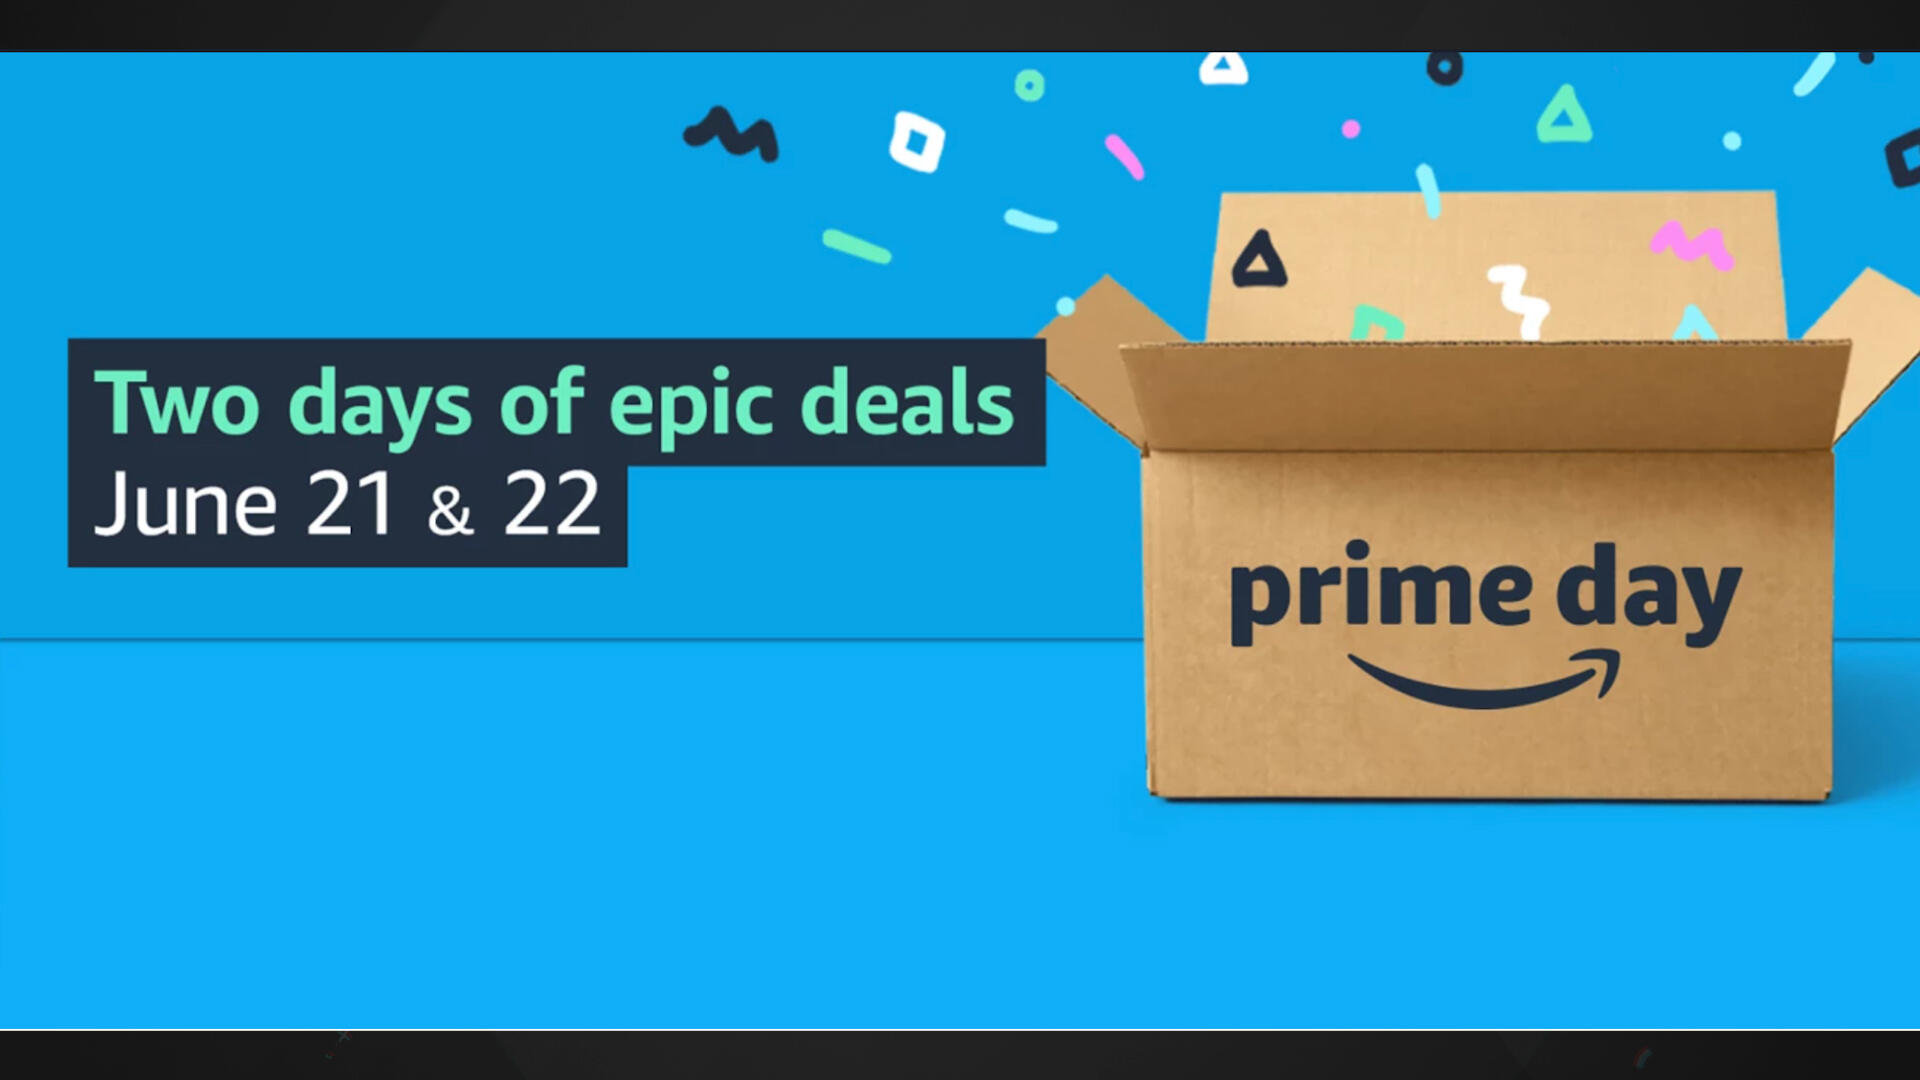 Video: Amazon Prime Day announced, SpaceX signs deal to ferry more space tourists to the ISS